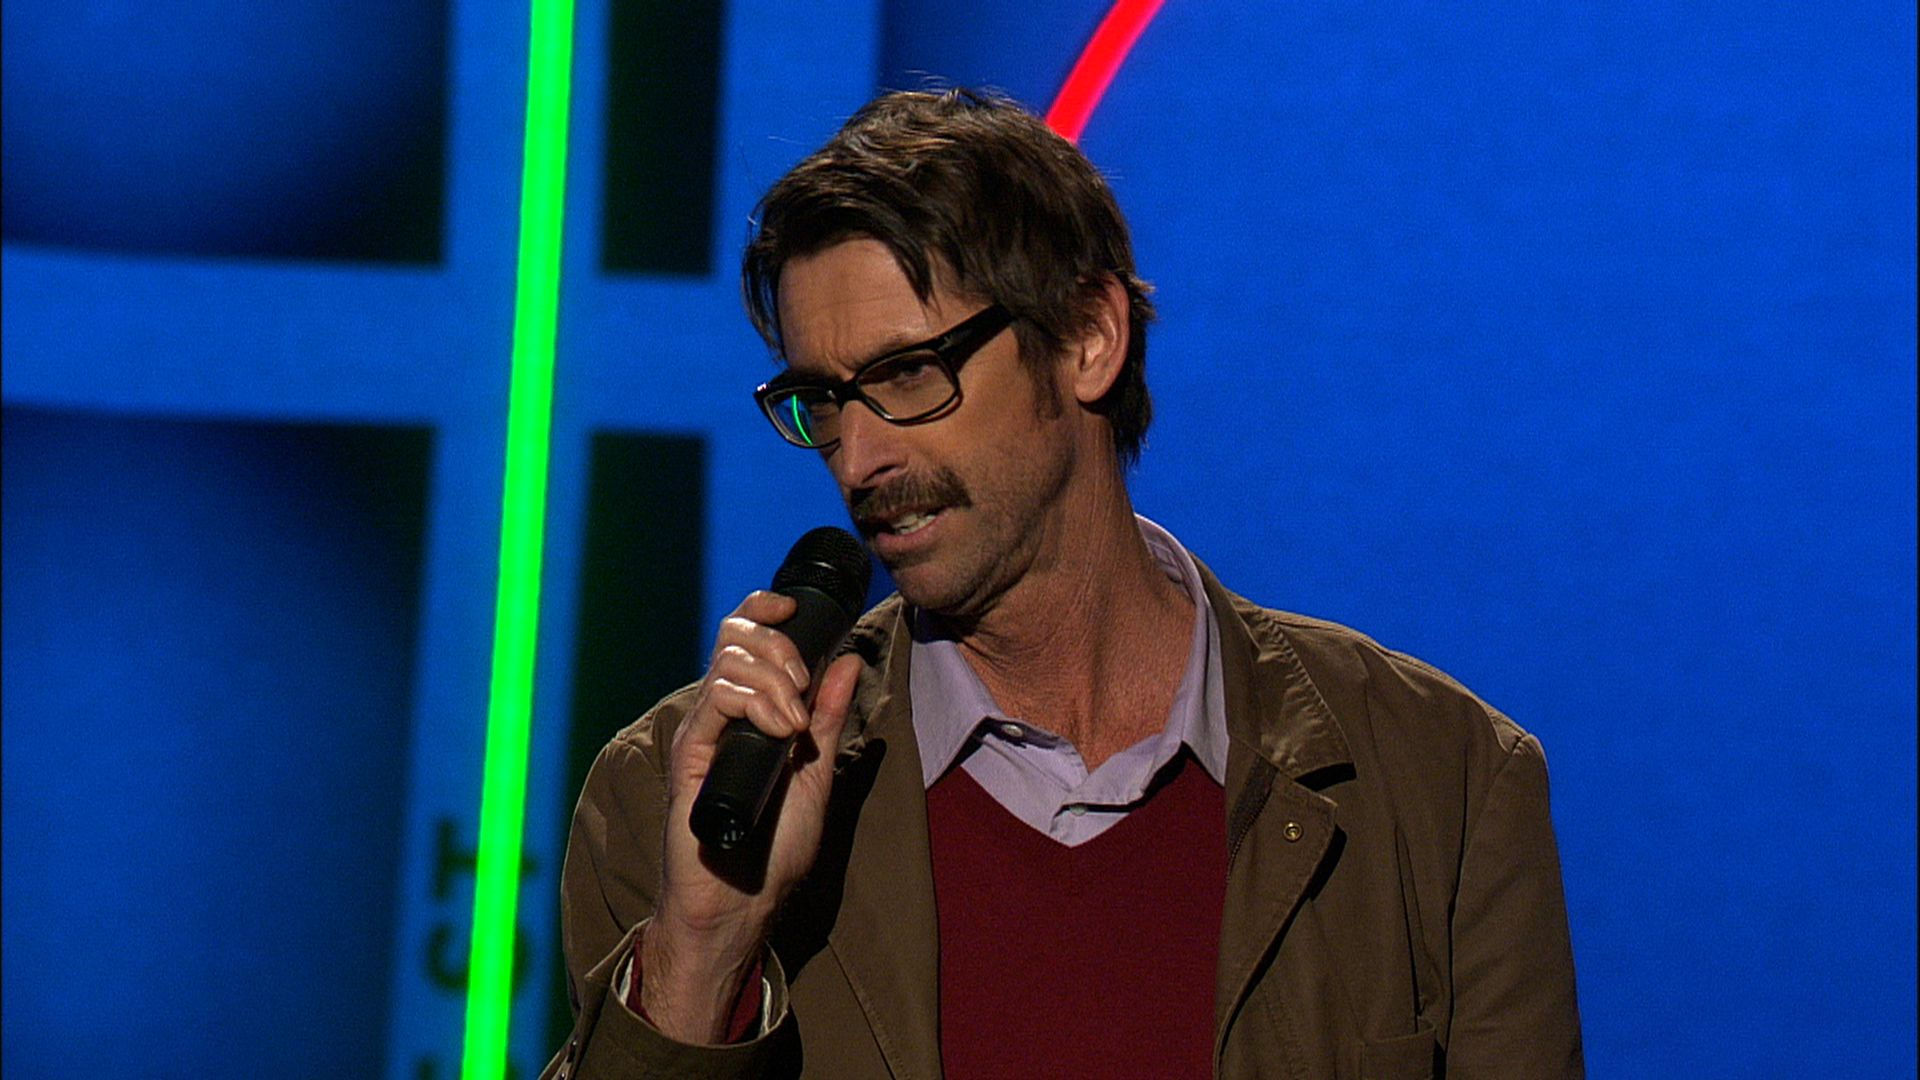 kirk fox parks and reckirk fox stand up, kirk fox imdb, kirk fox comedian, kirk fox height, kirk fox net worth, kirk fox parks and rec, kirk fox community, kirk fox twitter, kirk fox wedding, kirk fox tv show, kirk fox instagram, kirk fox comedy, kirk fox movies, kirk fox talk show, kirk fox tour, kirk fox podcast, kirk fox actor, kirk fox youtube, kirk fox special, kirk fox parks and recreation